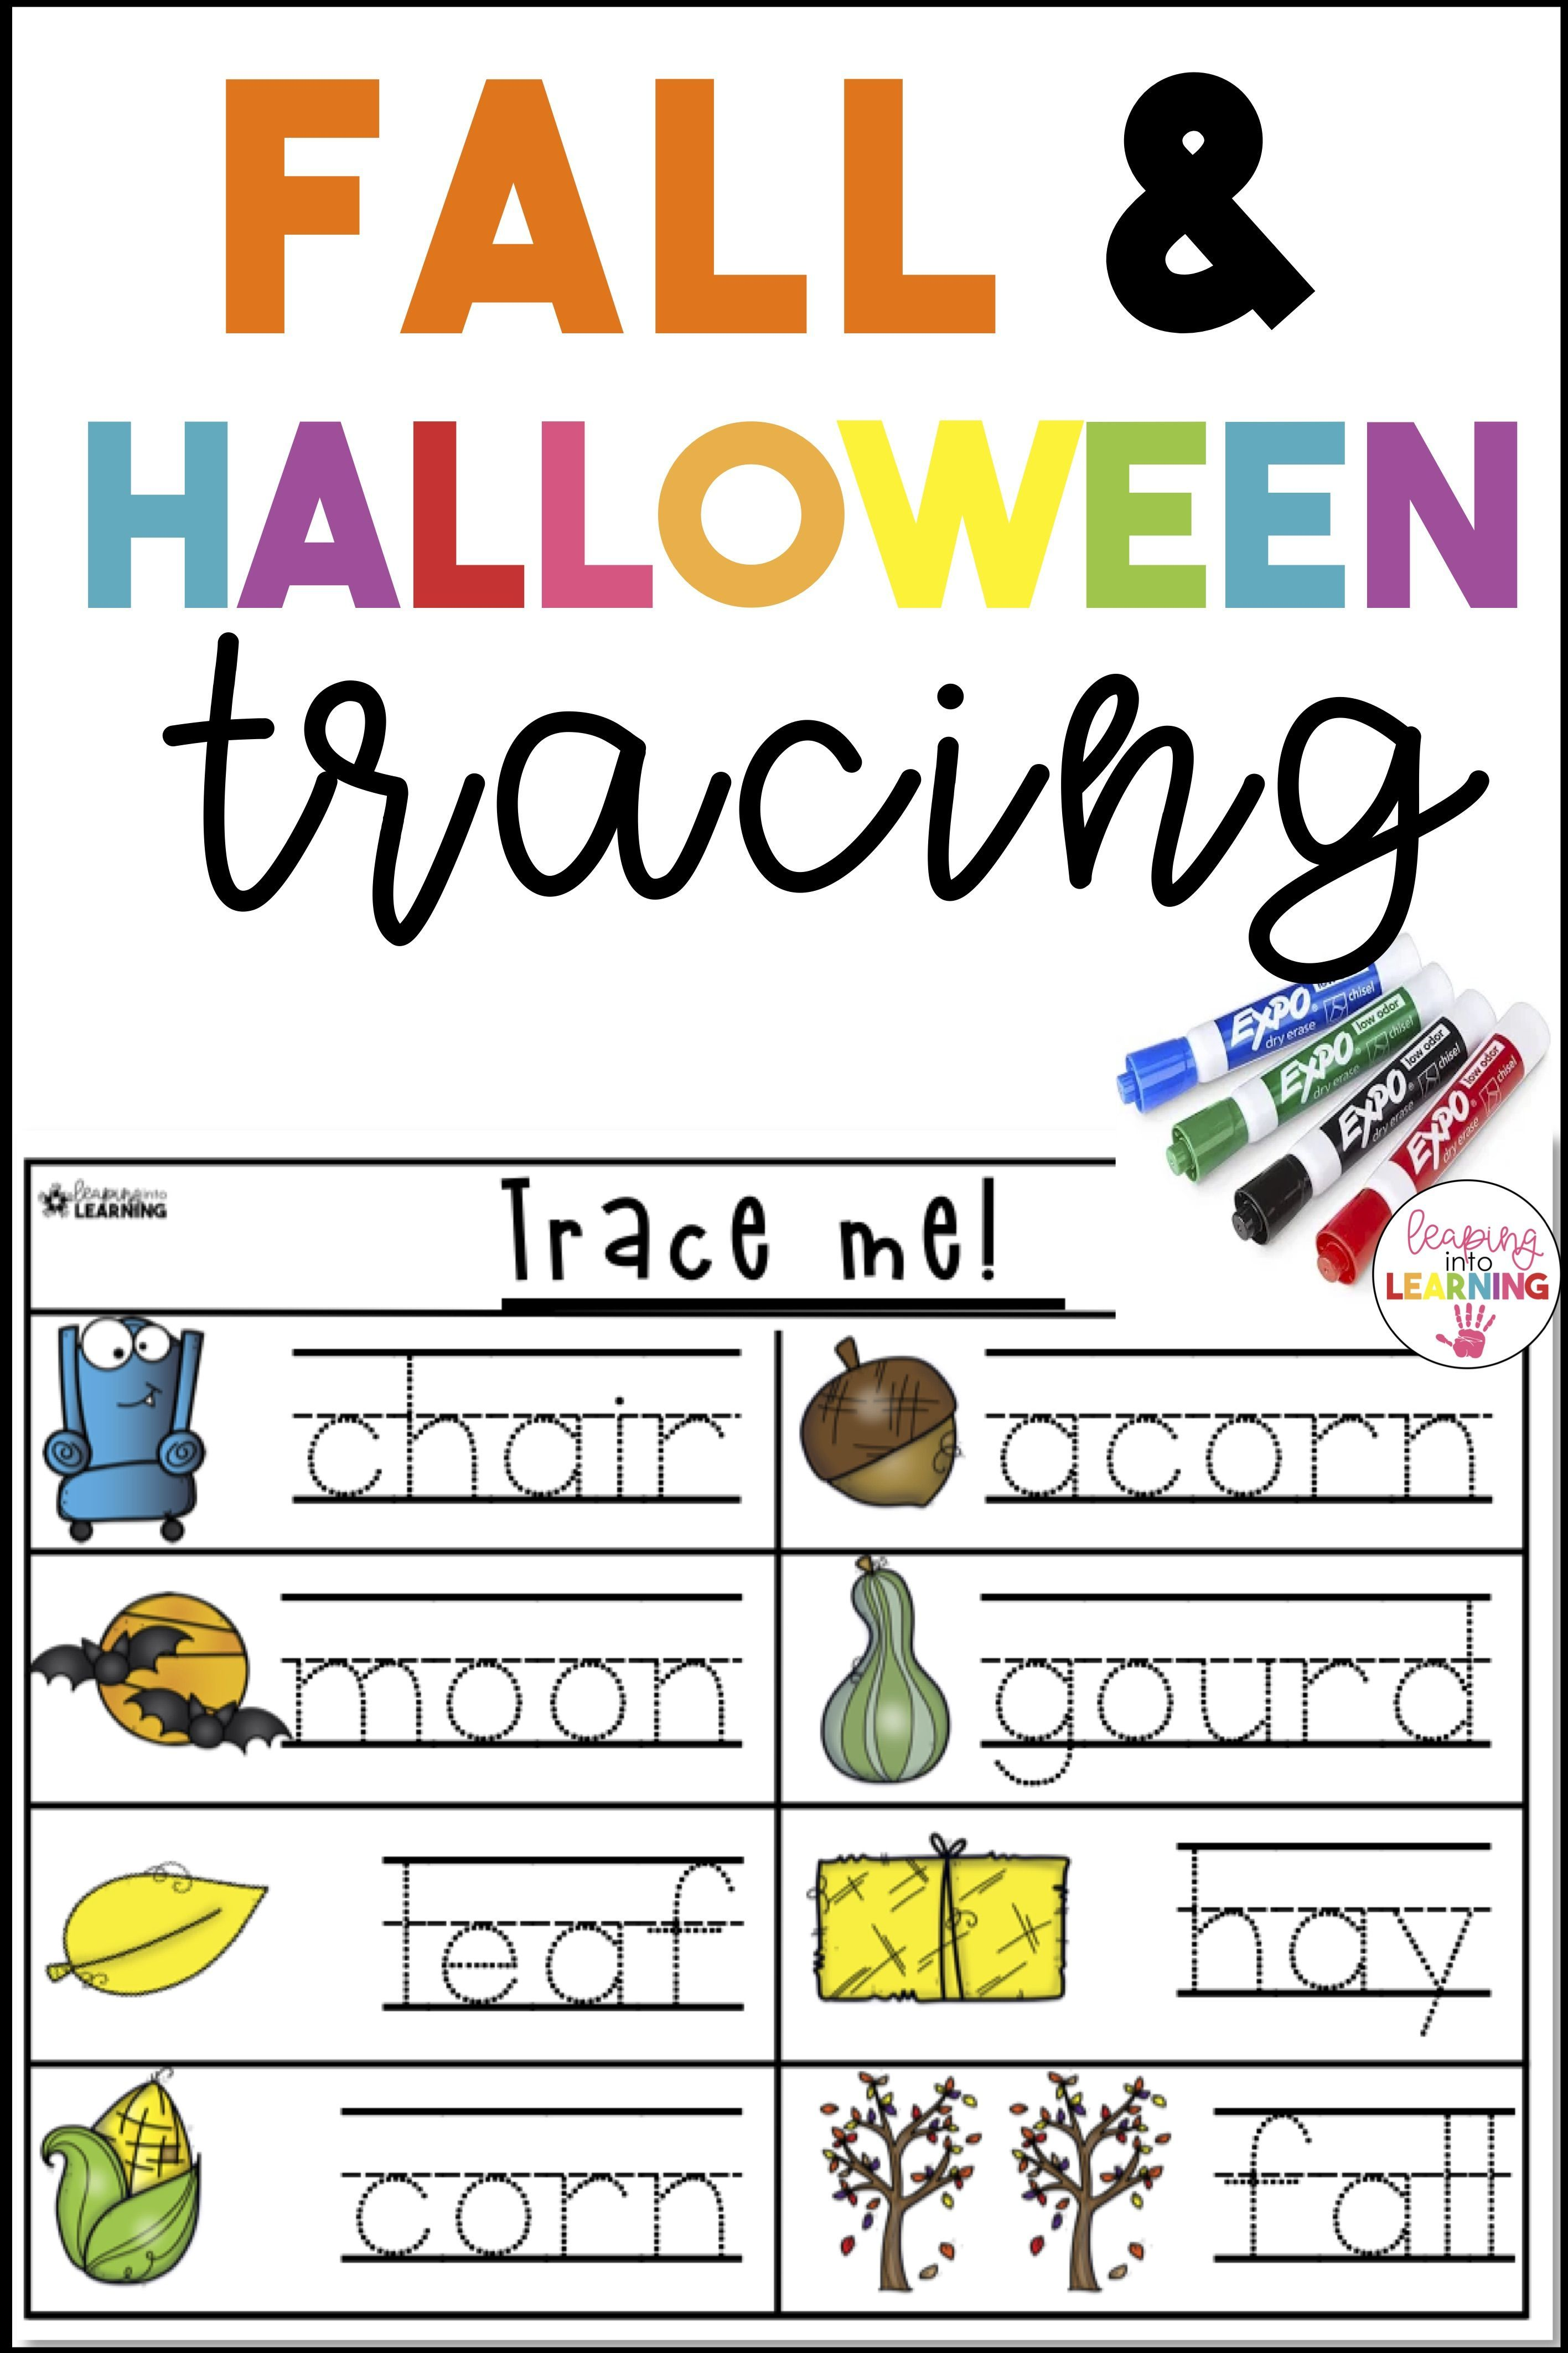 Fall Activities For Preschoolers With Images